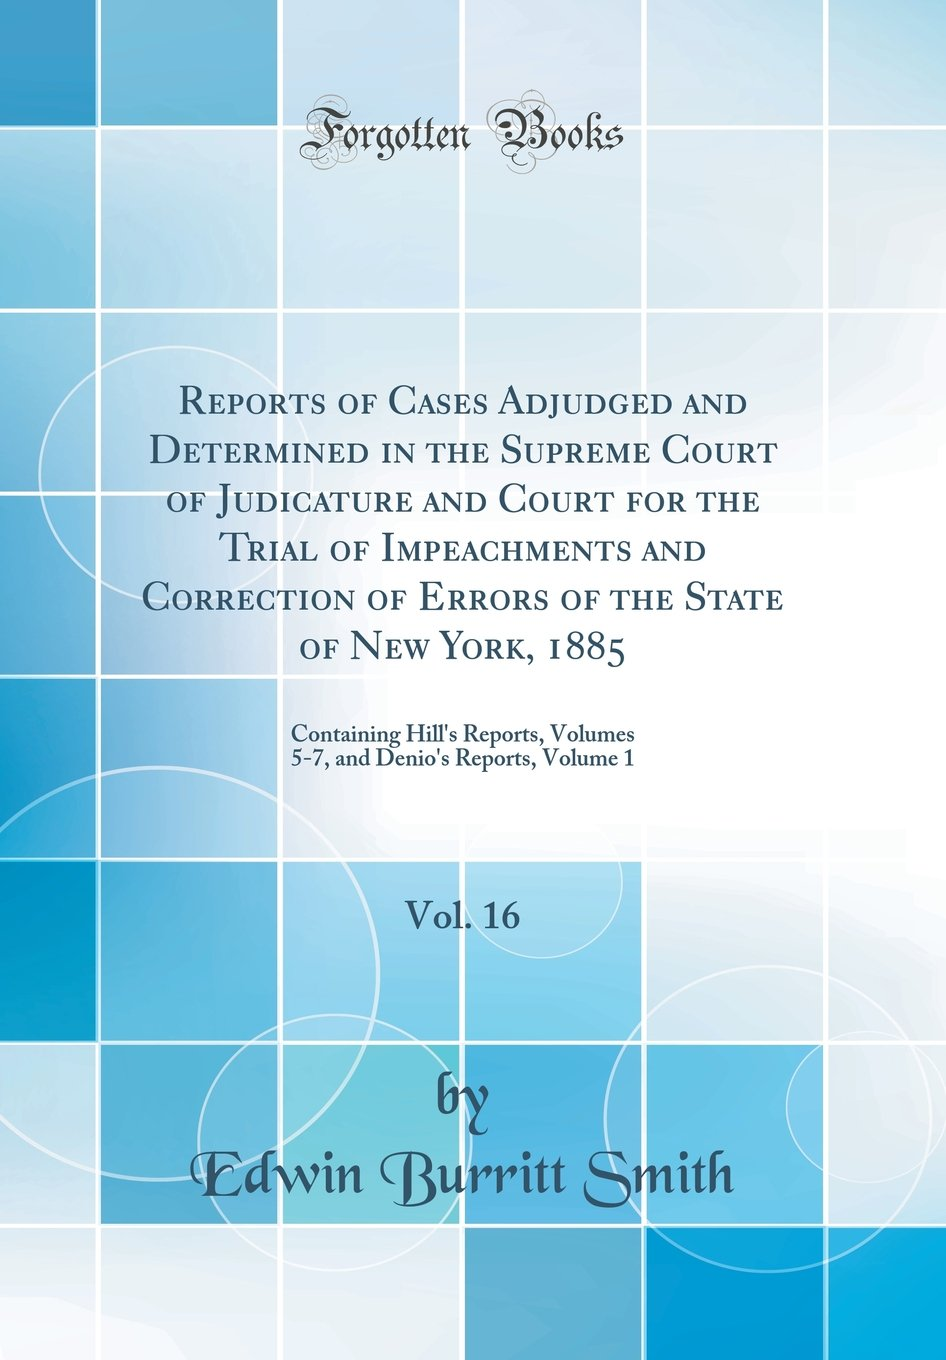 Read Online Reports of Cases Adjudged and Determined in the Supreme Court of Judicature and Court for the Trial of Impeachments and Correction of Errors of the ... Volumes 5-7, and Denio's Reports, Volume 1 PDF